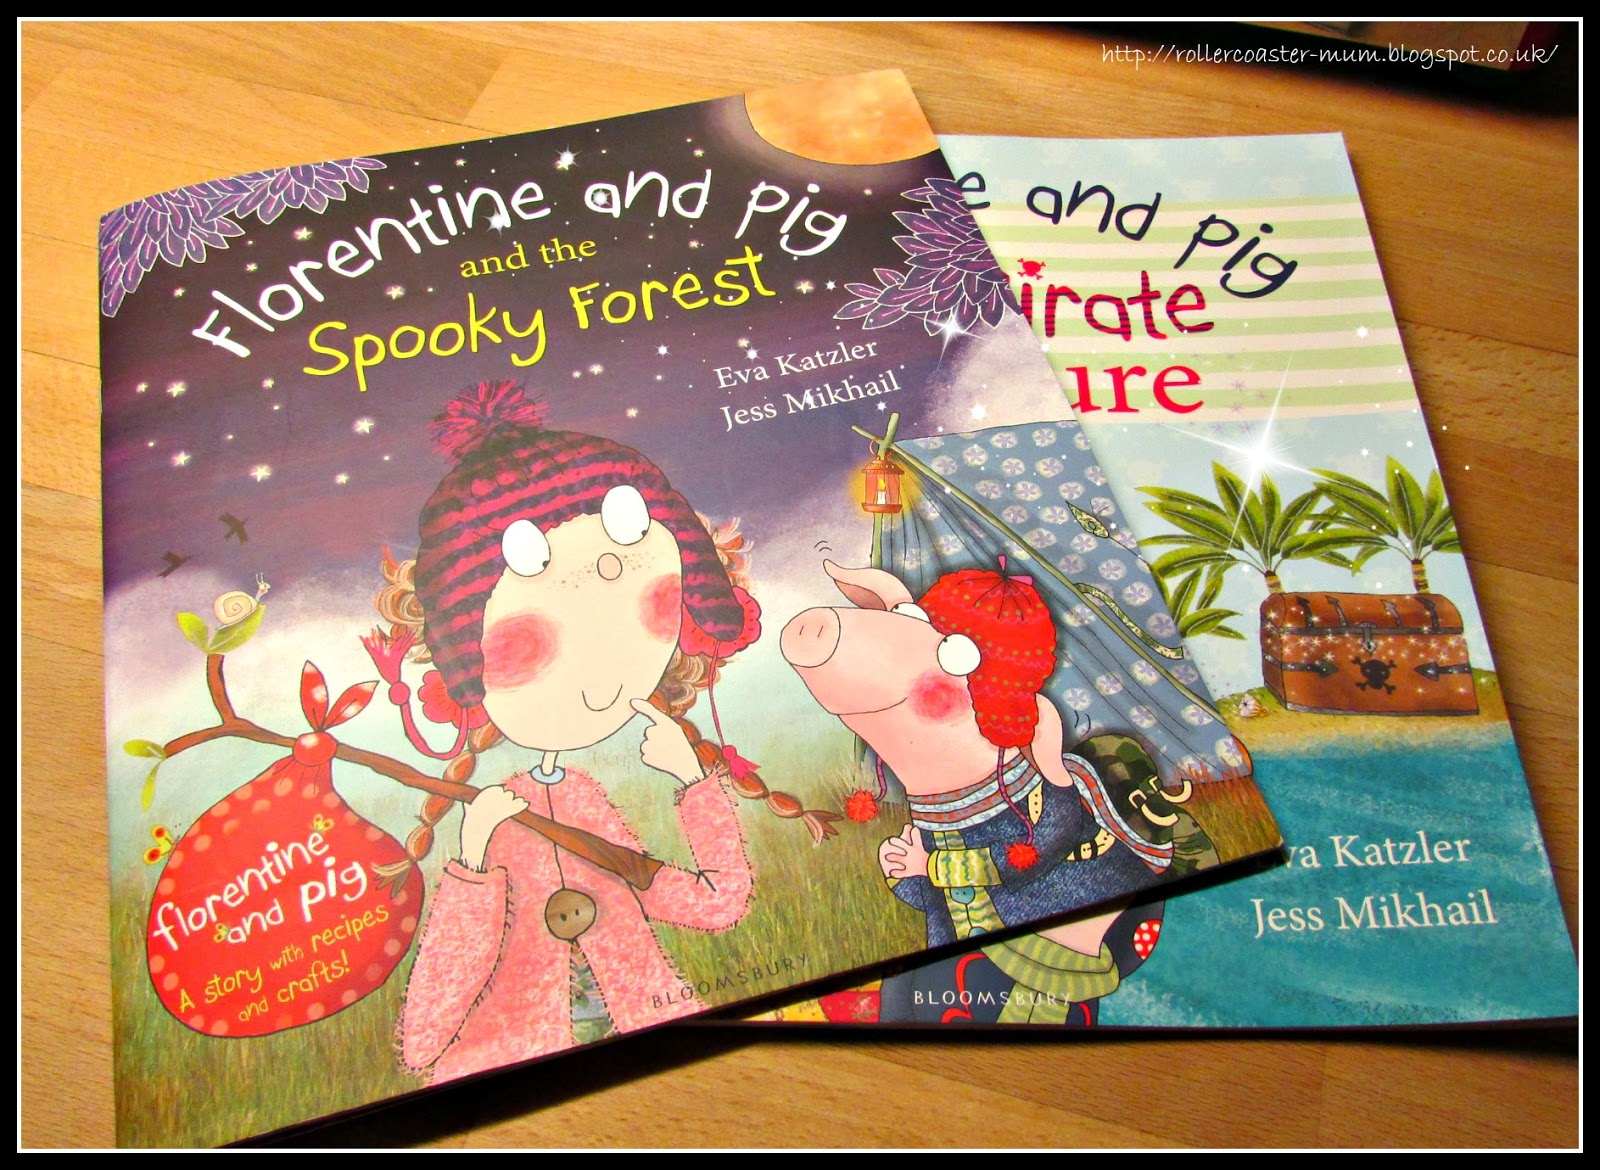 Book review - Florentine and Pig and the Spooky Forest